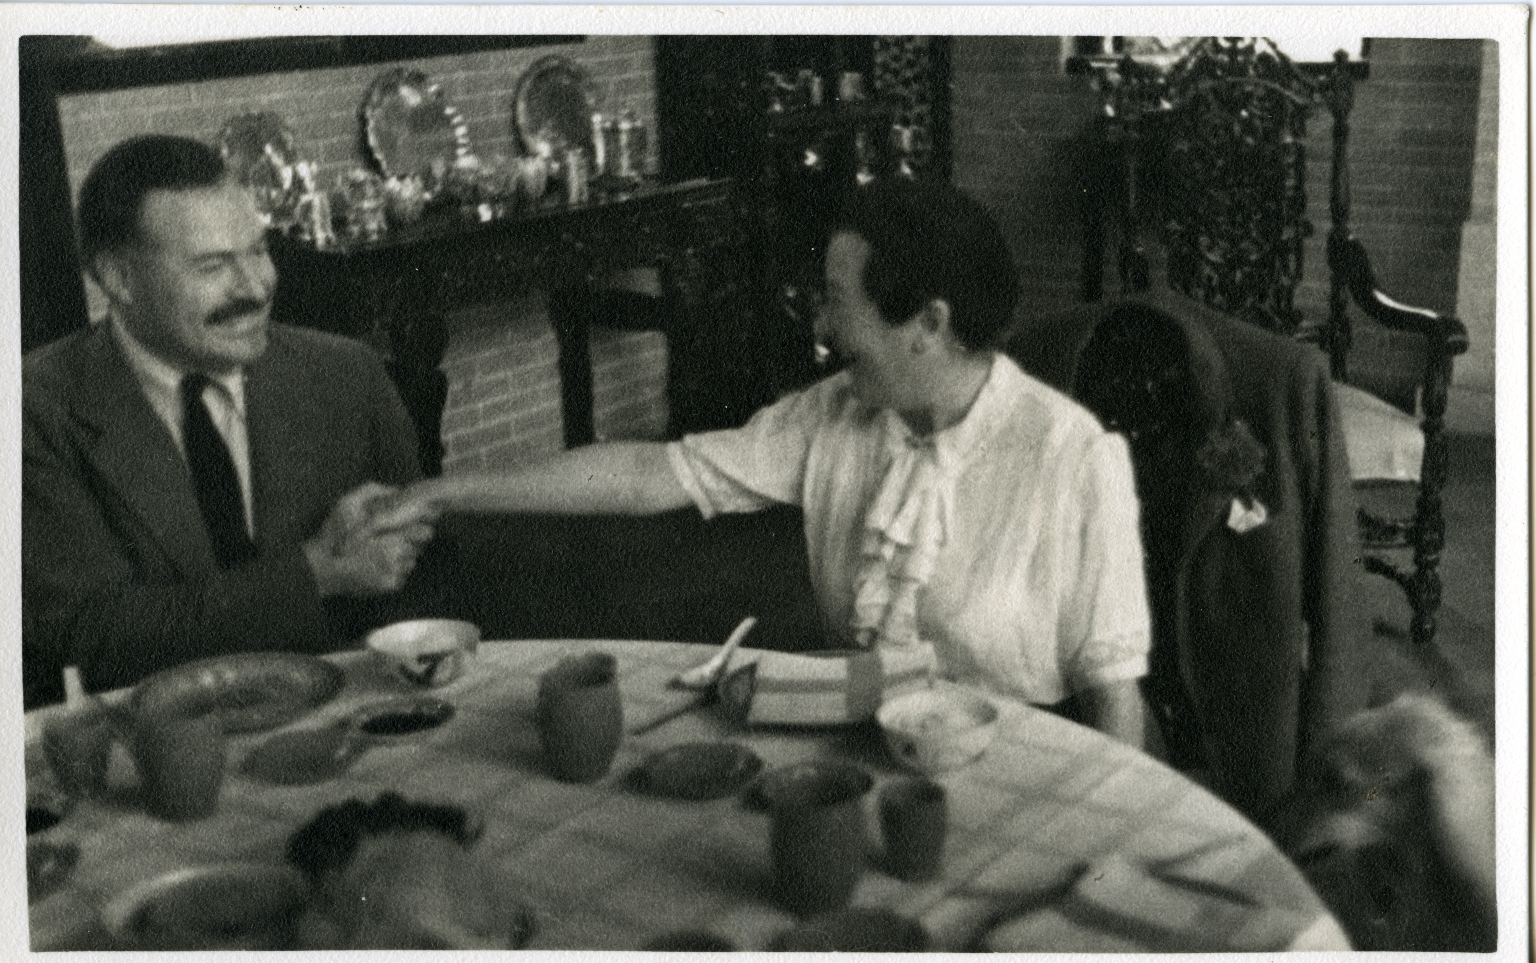 Hemingway at Table with Woman